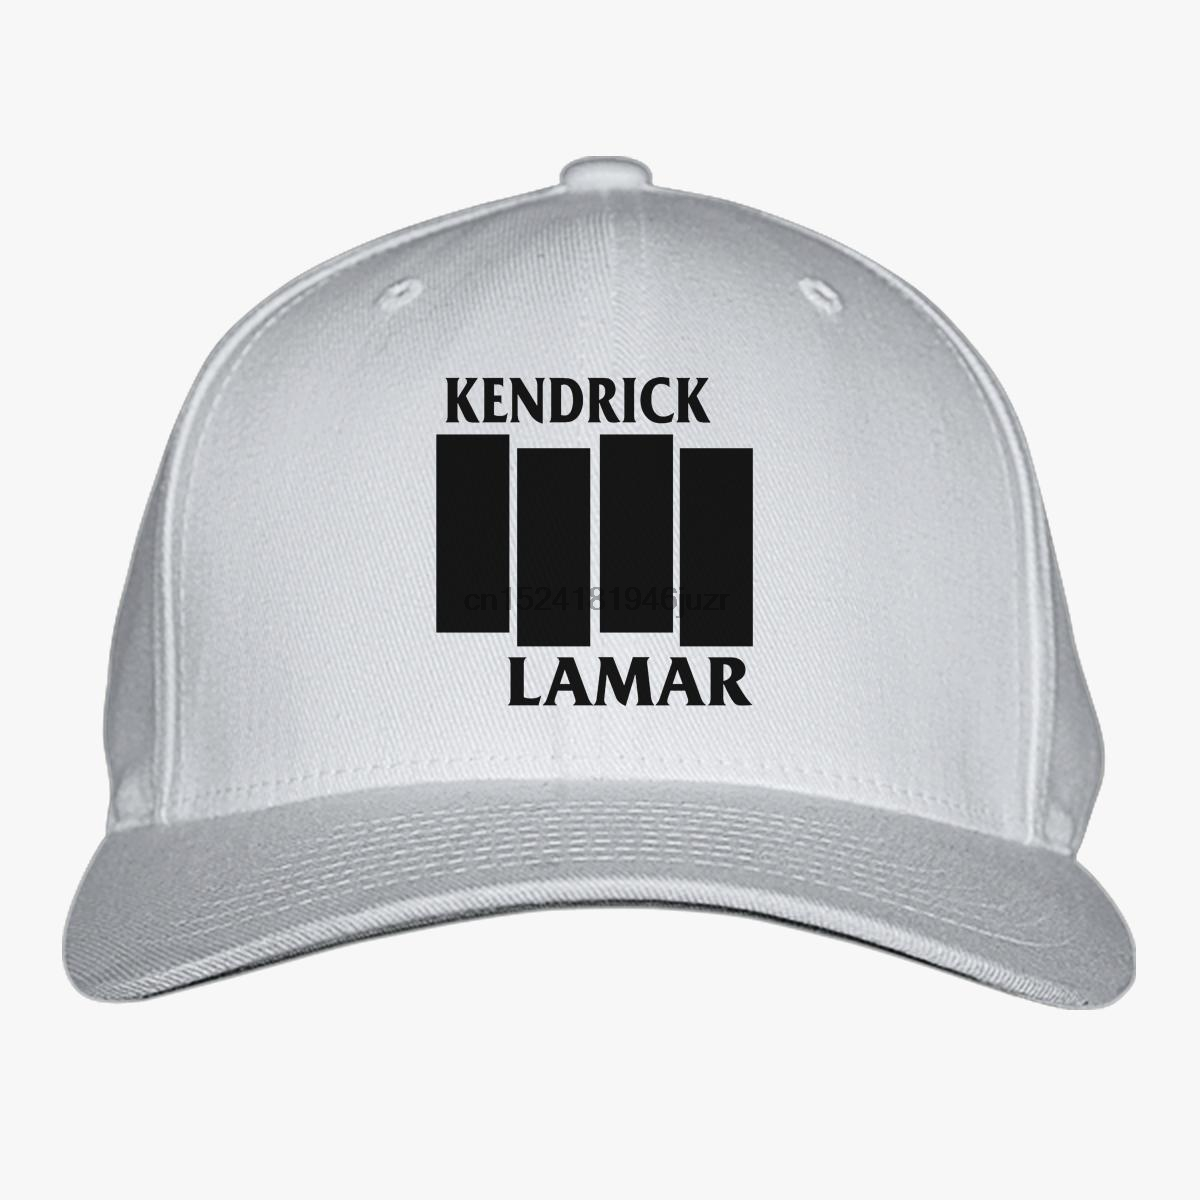 Men's Baseball Caps Hip Hop Baseball Caps Printed Snapback Bee Humble Parody Kendrick Lamar Baseball Cap Apparel Accessories